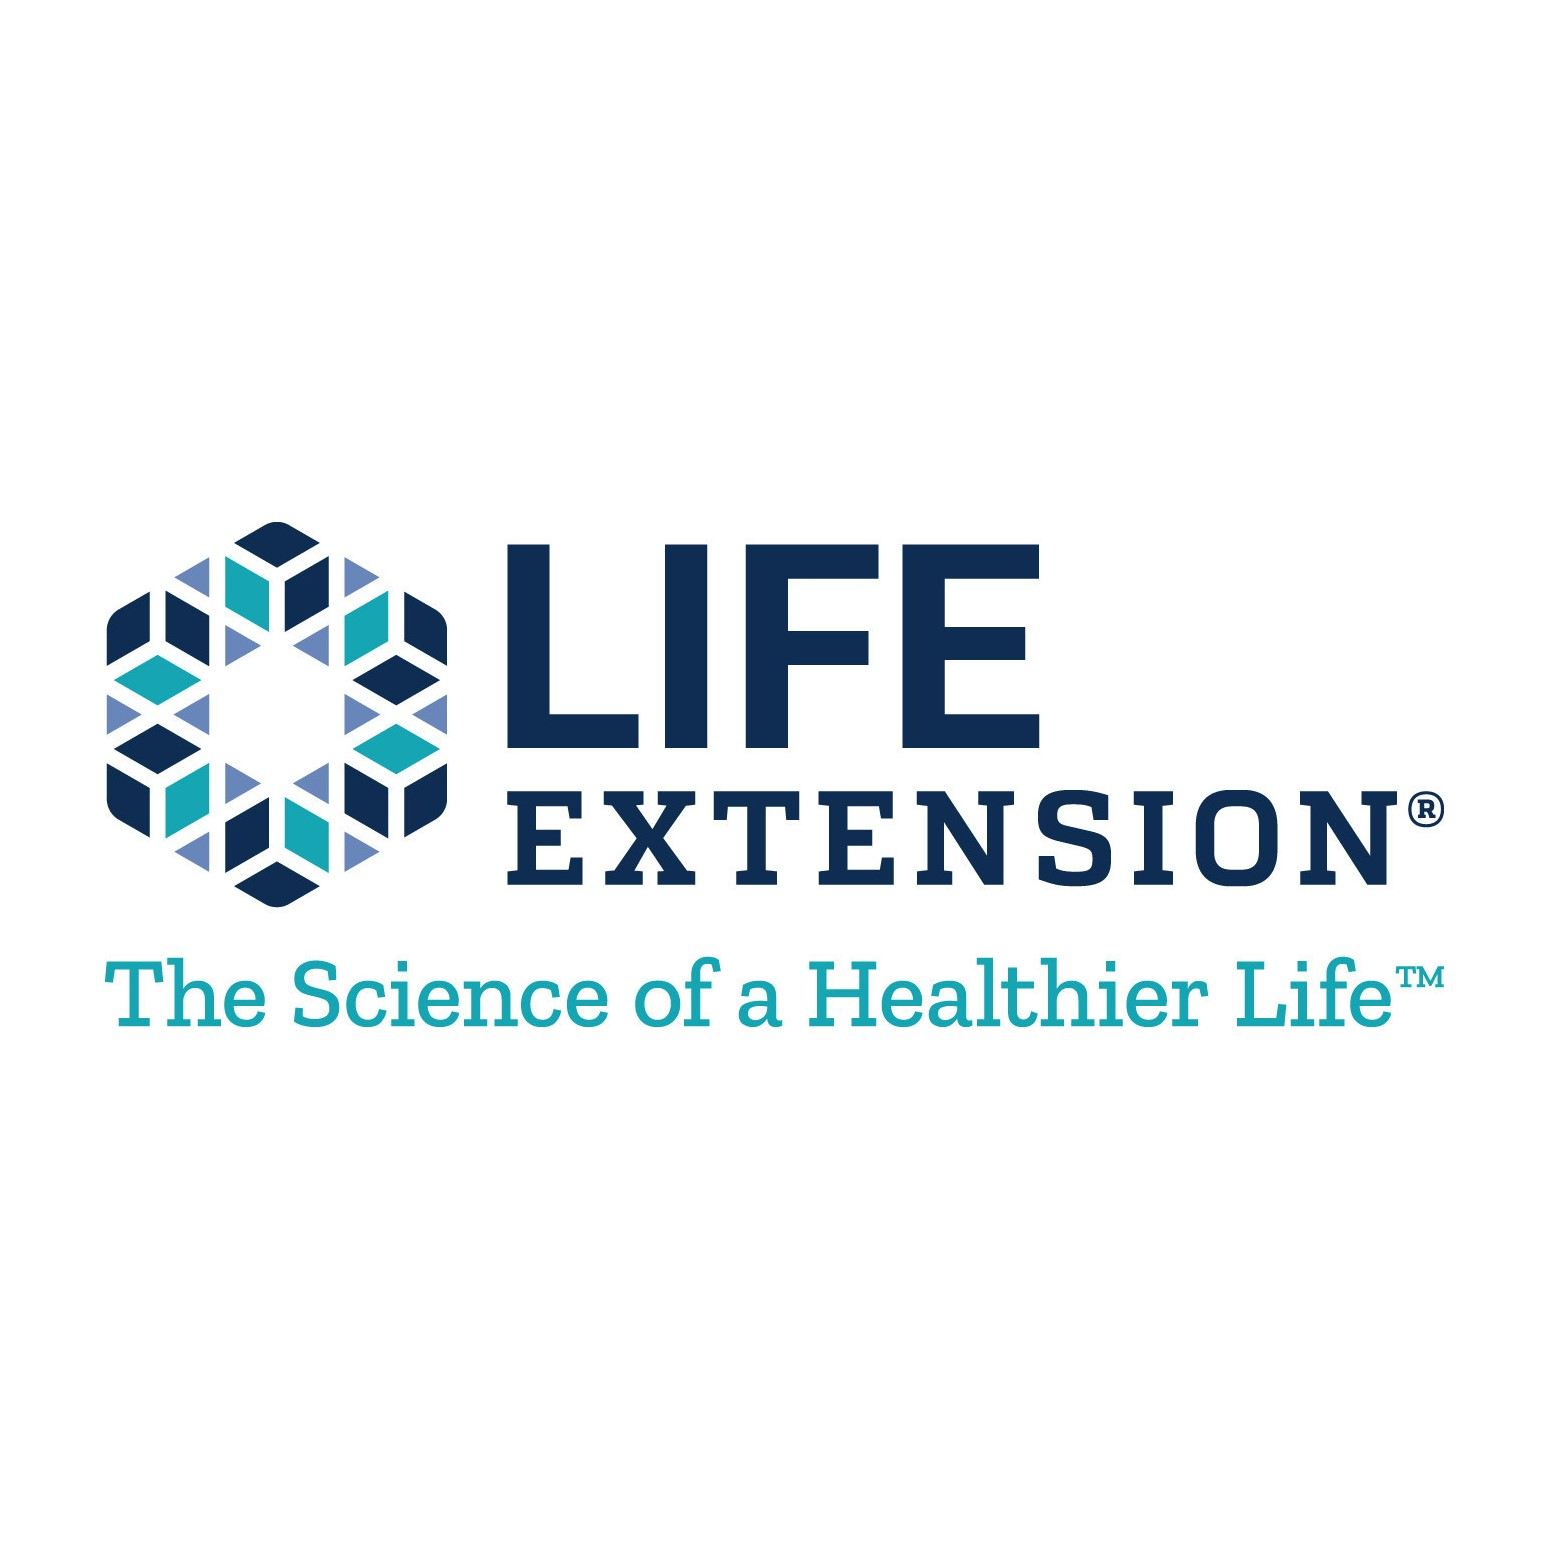 Freshy Cut Prices on Premium-Quality Formulations! Save up to 70% during Life Extension's Overstock Sale.